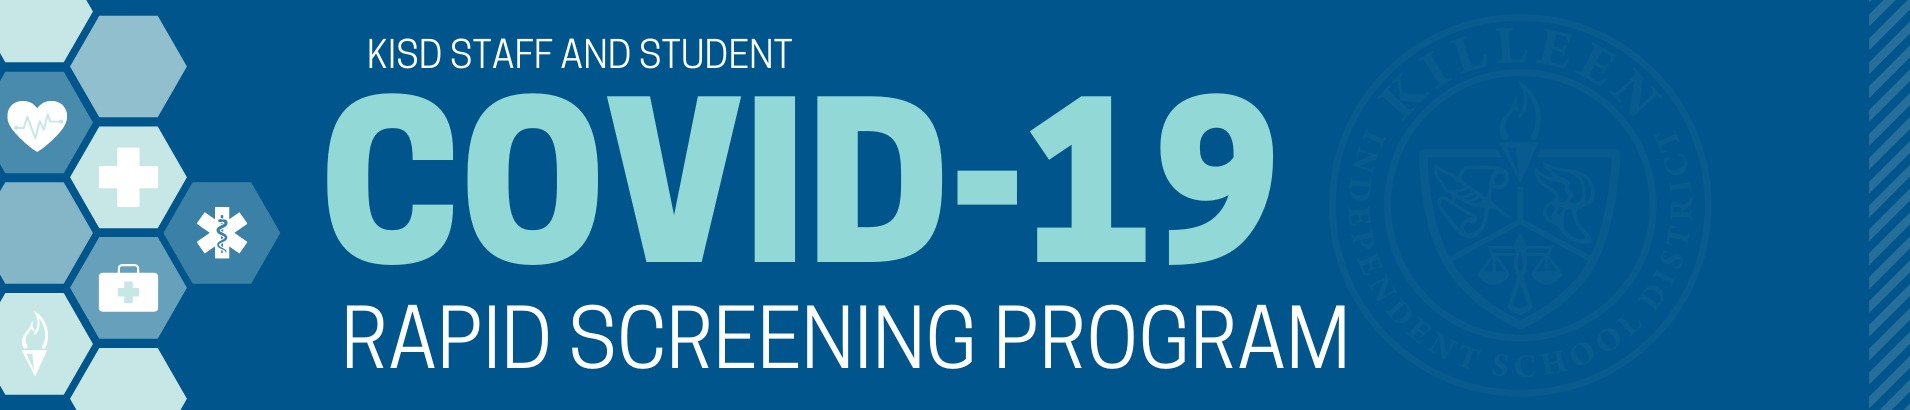 COVID-19 Killeen ISD Rapid Screening